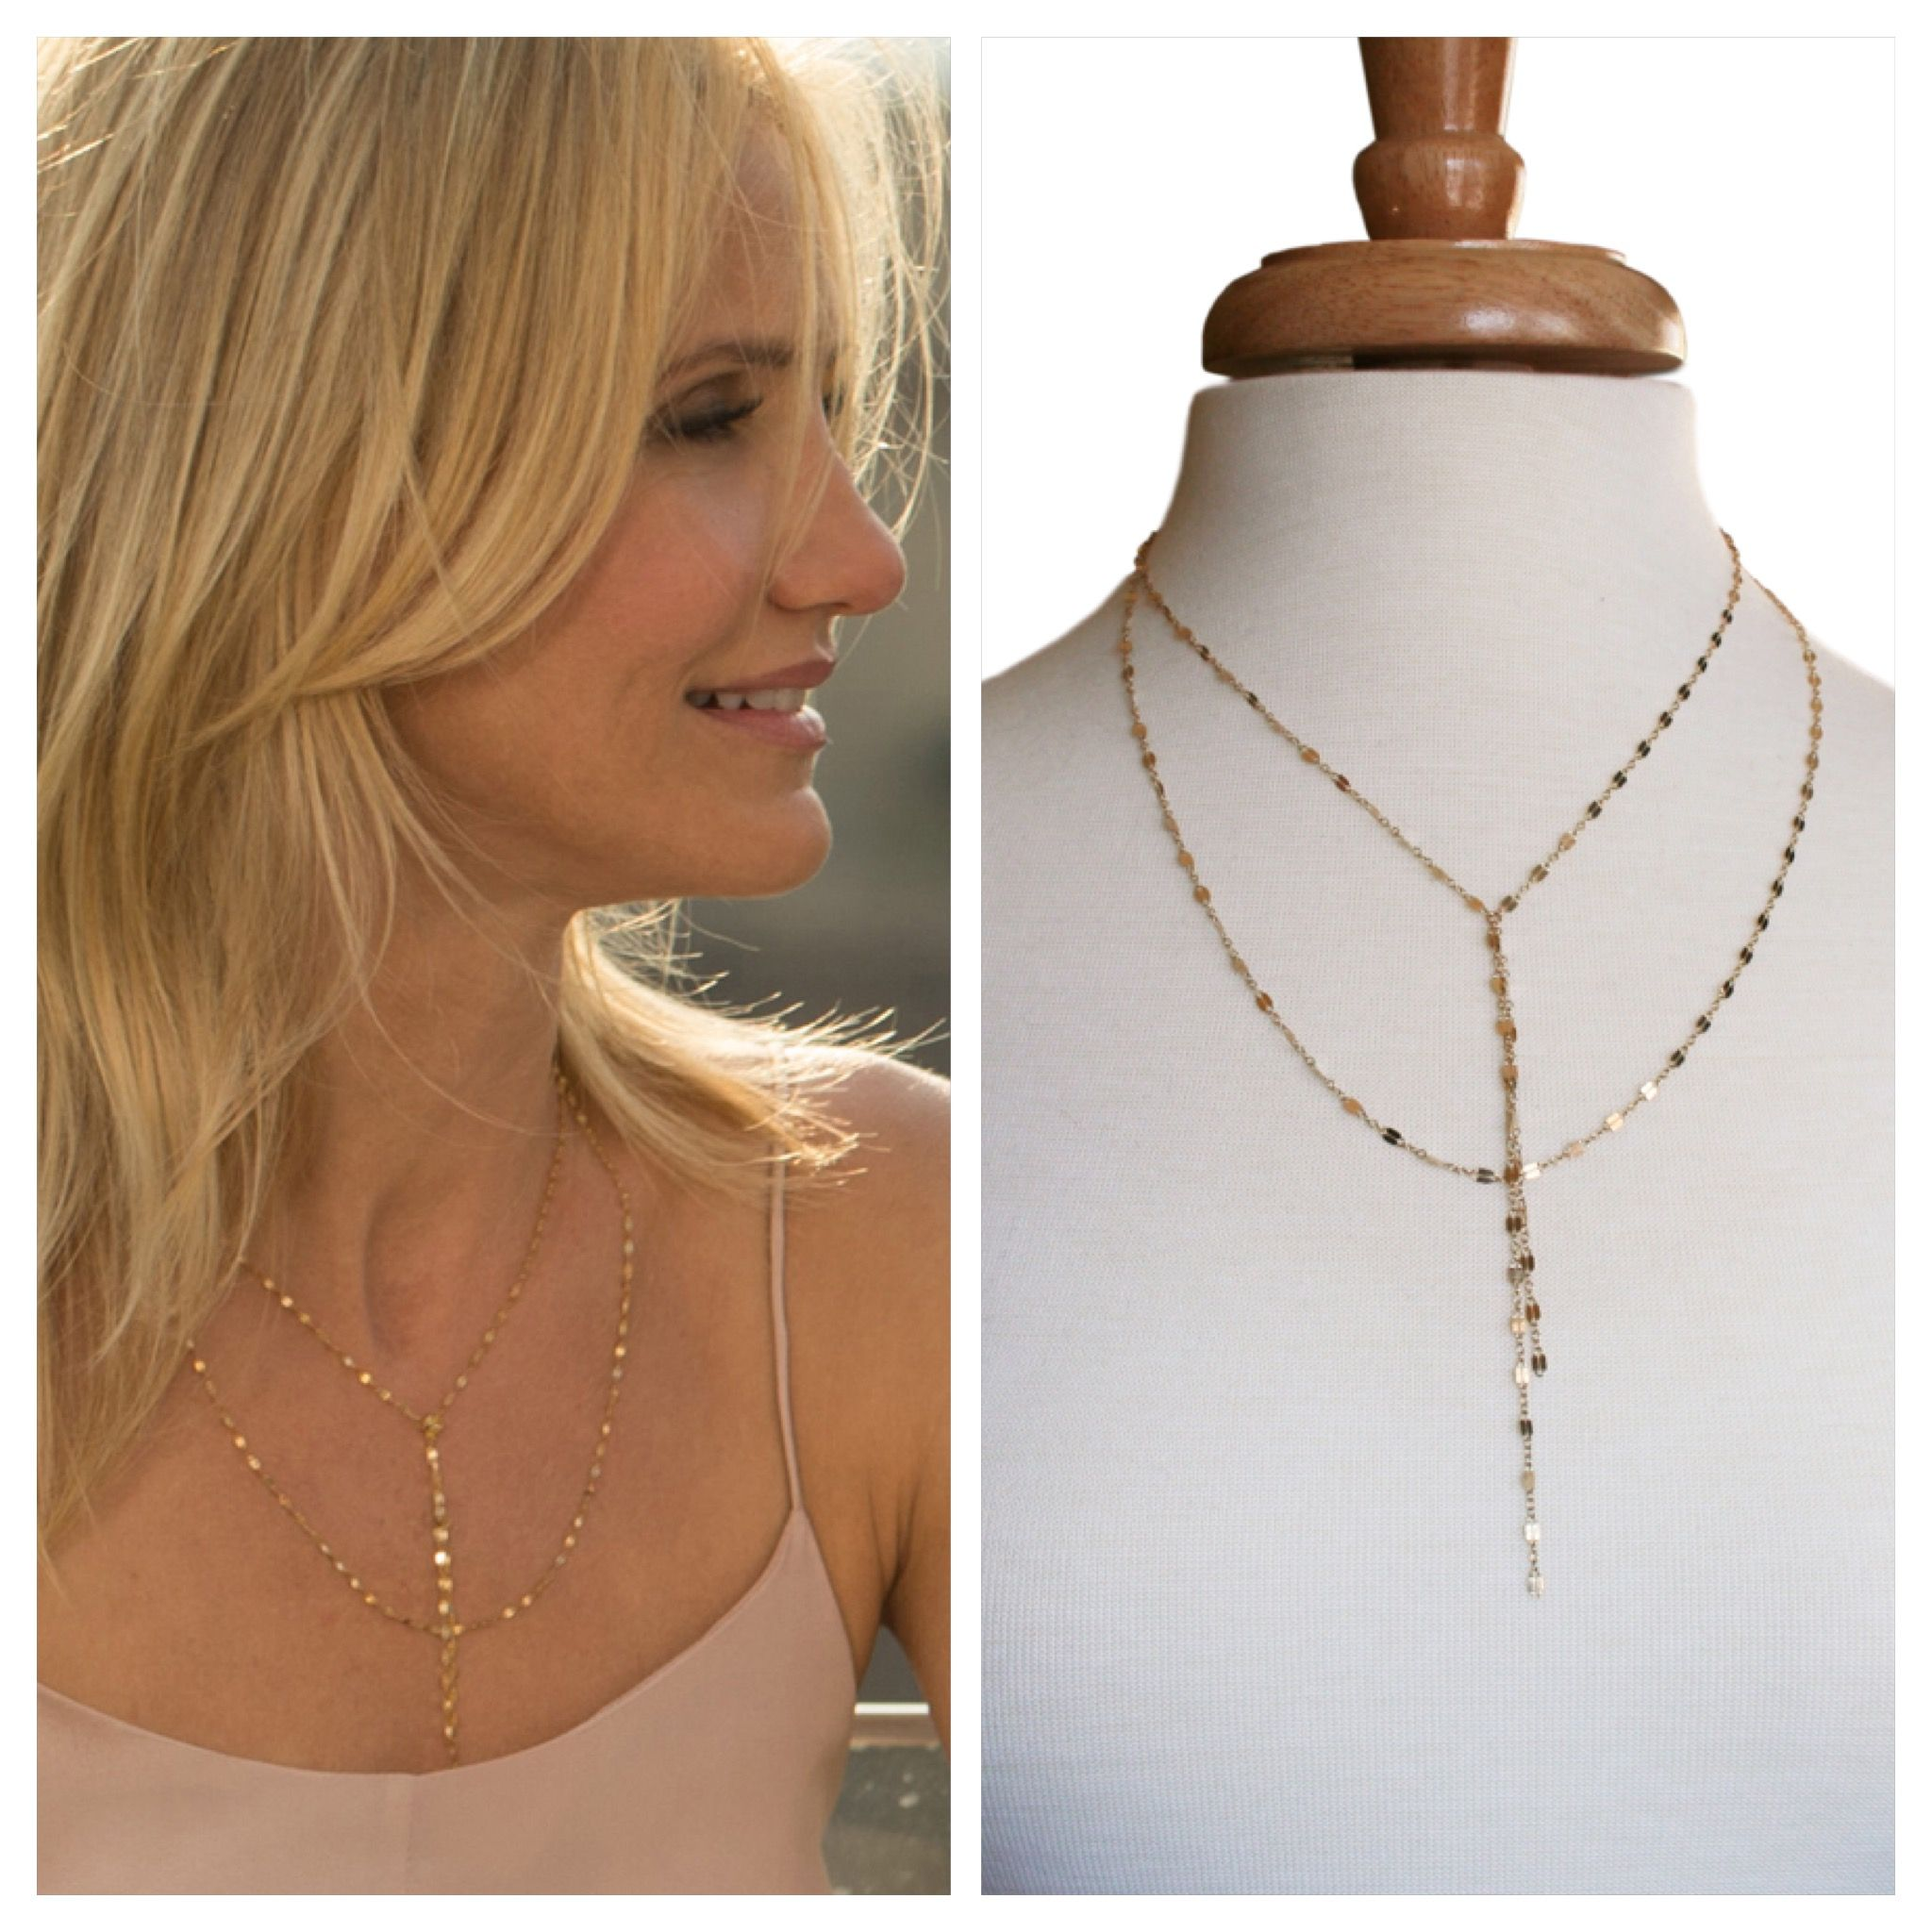 Cameron Diaz Inspired Necklace, Double Strand Lariat Necklace